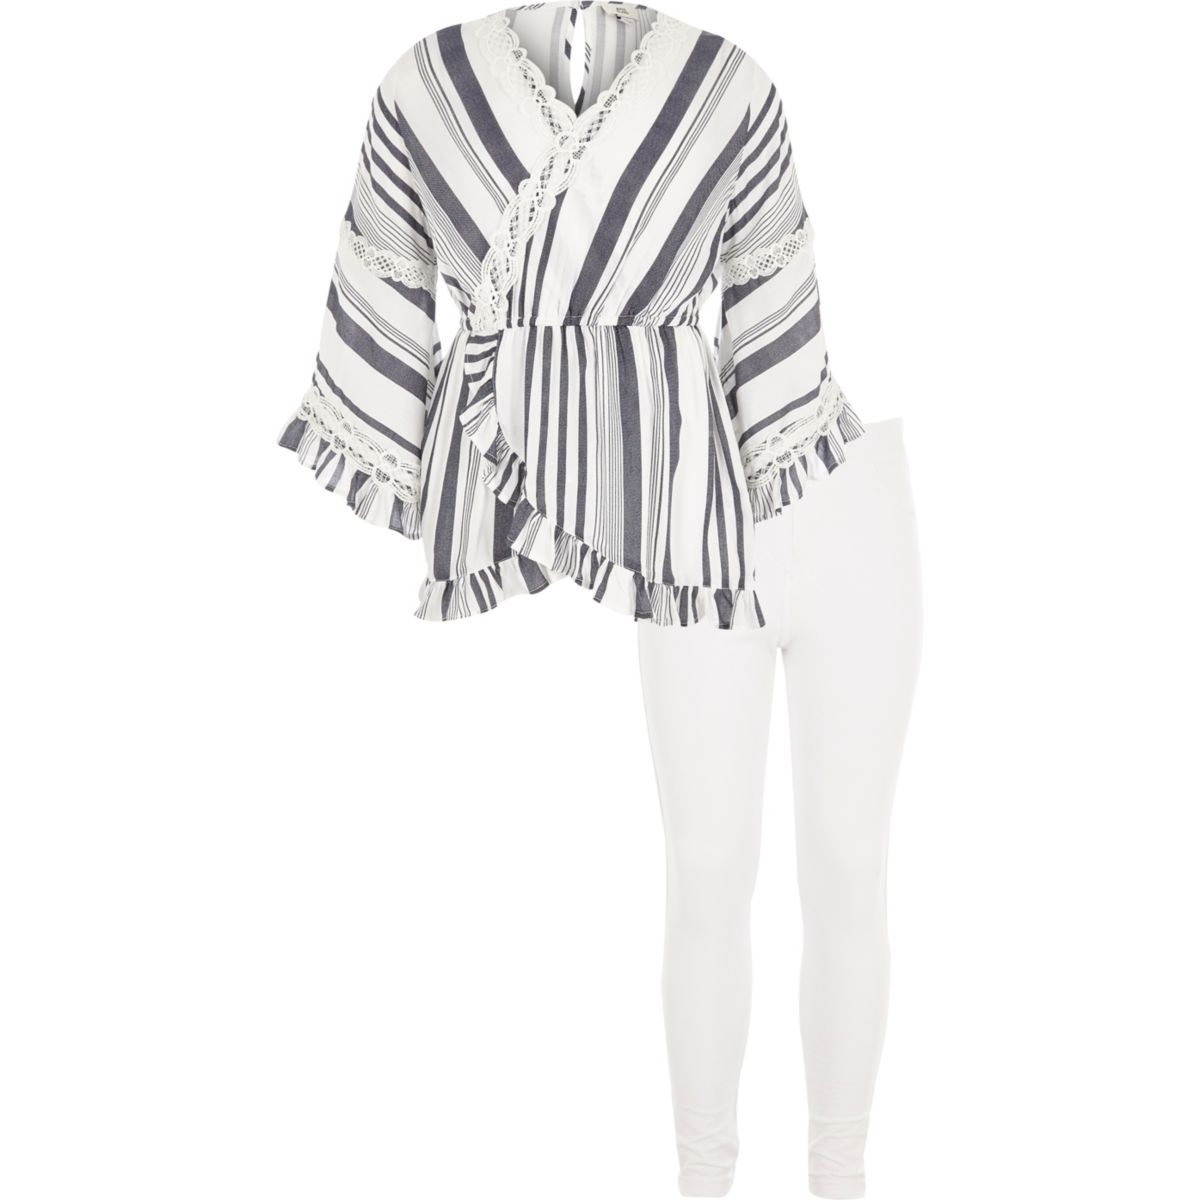 Girls white stripe tunic and leggings outfit